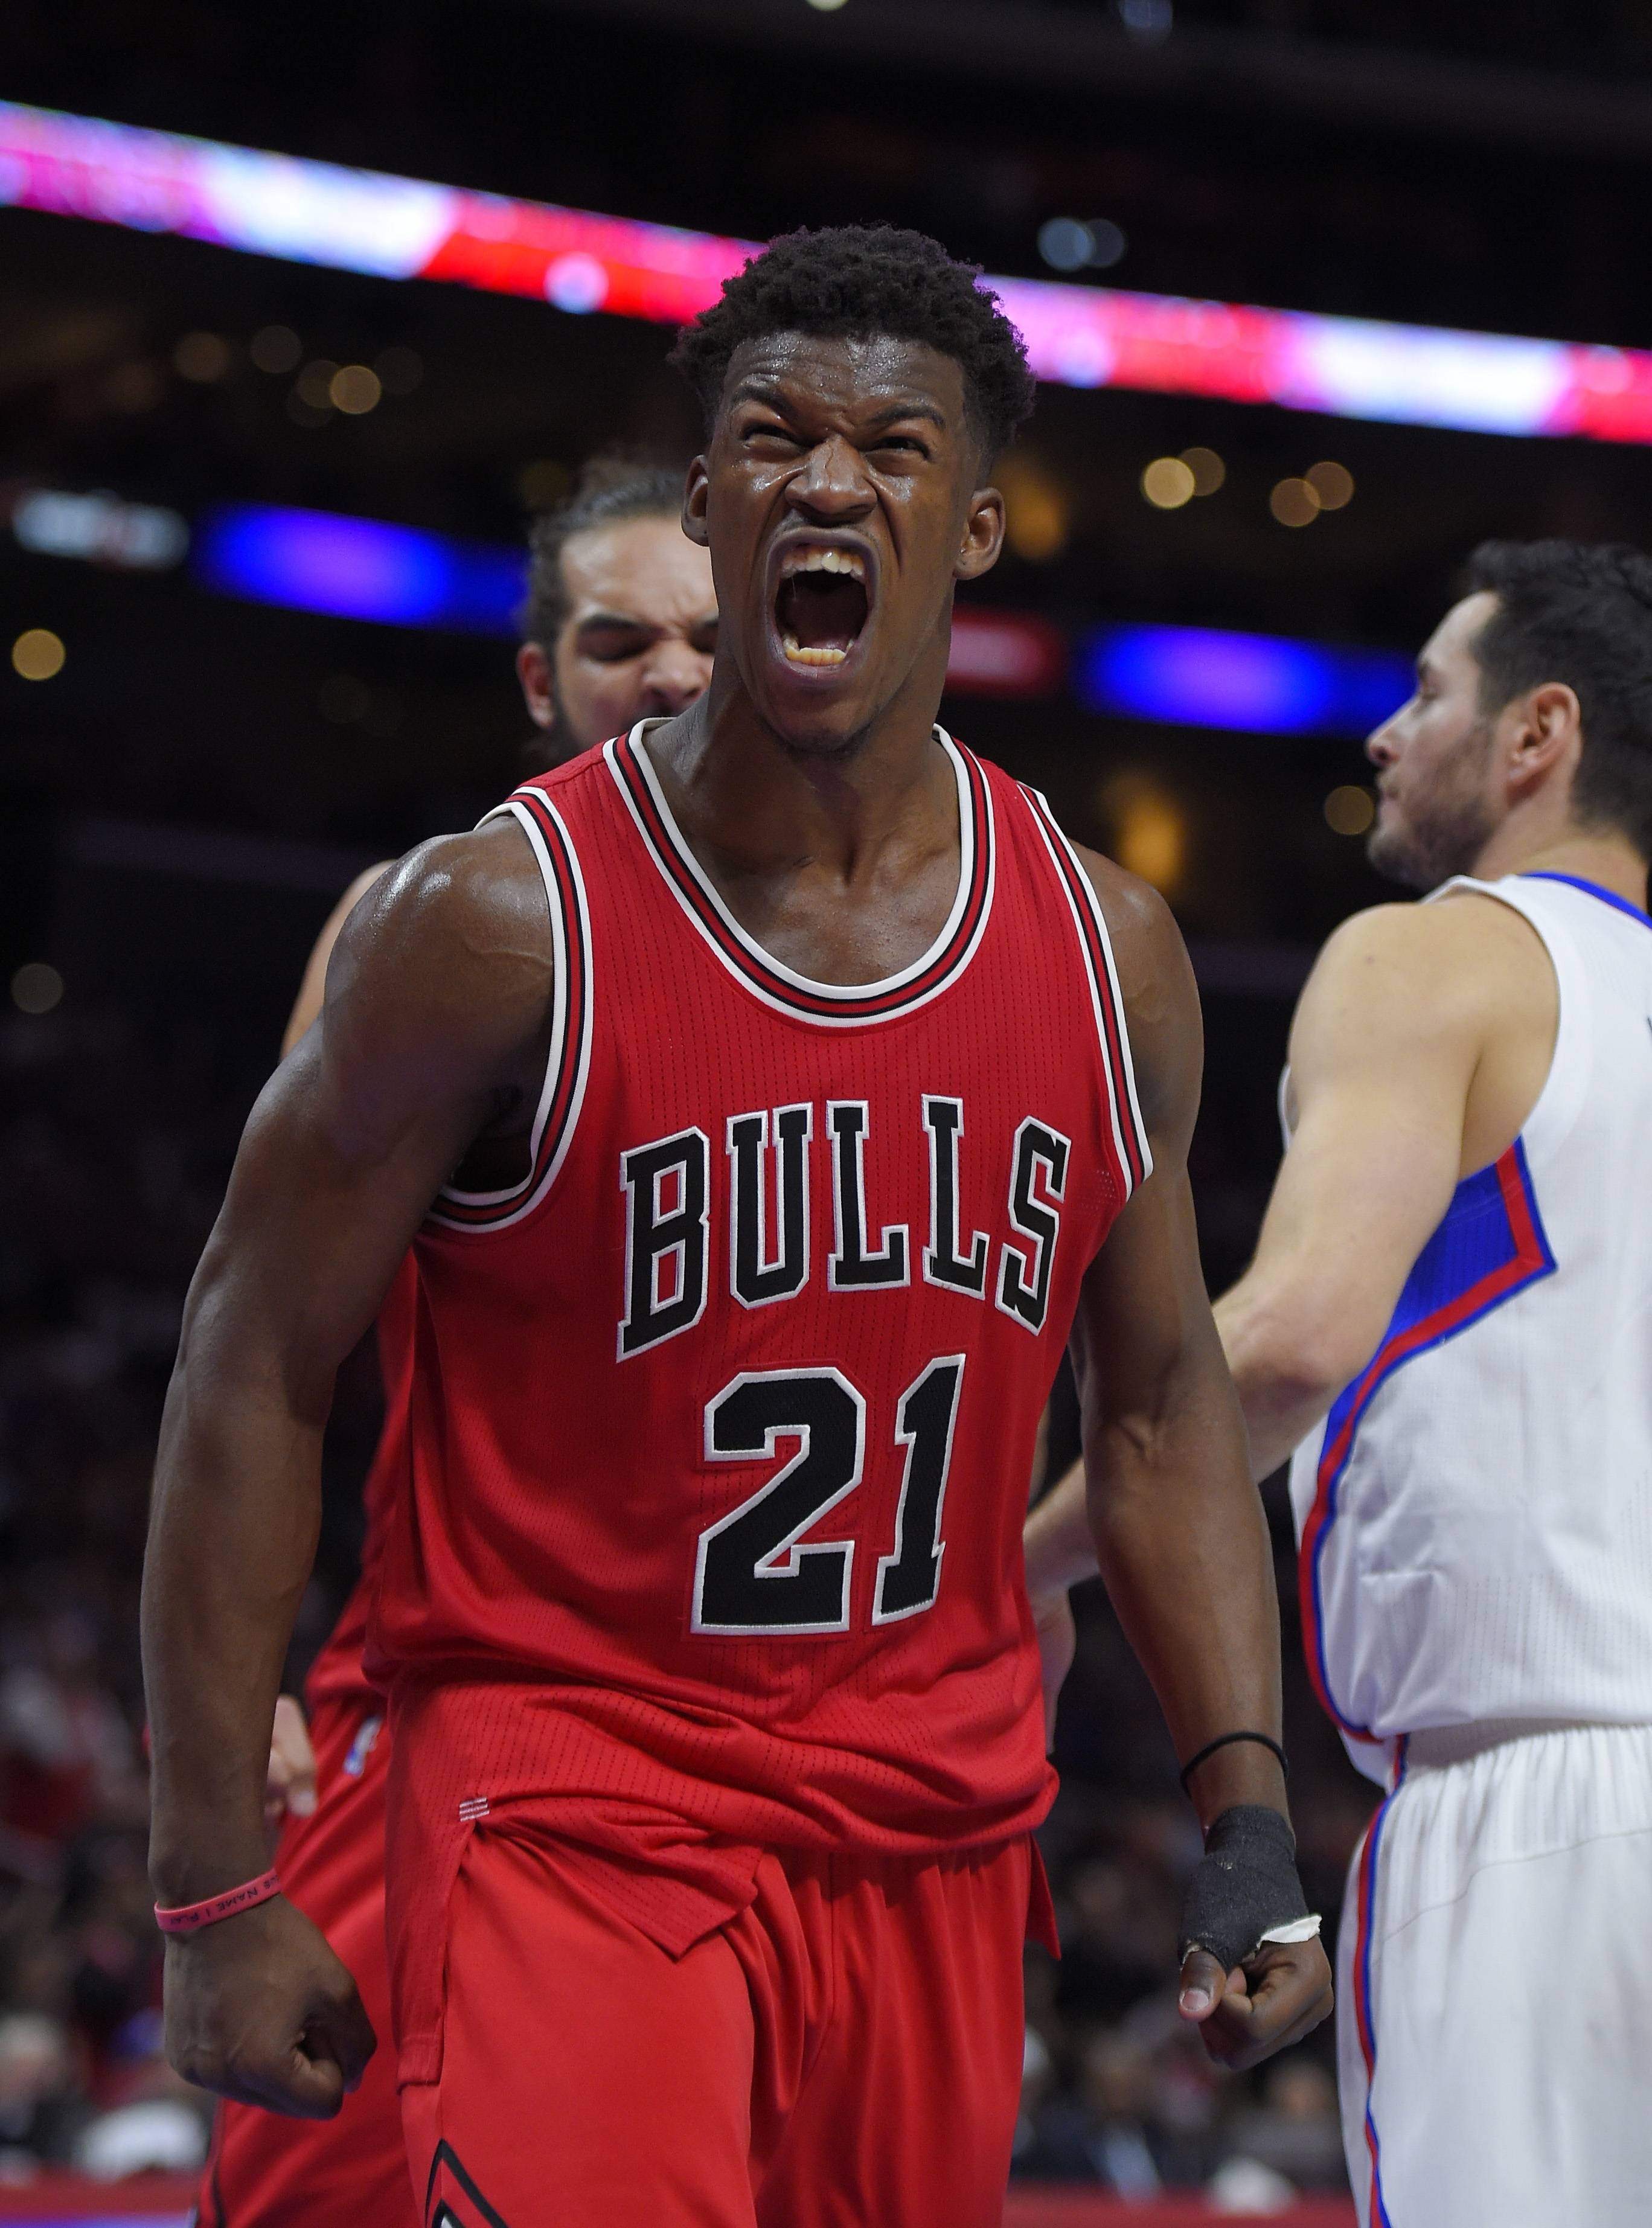 Guard Jimmy Butler has had reason to get excited: His 22 points helped get the Bulls off to a flying start on the annual circus trip.